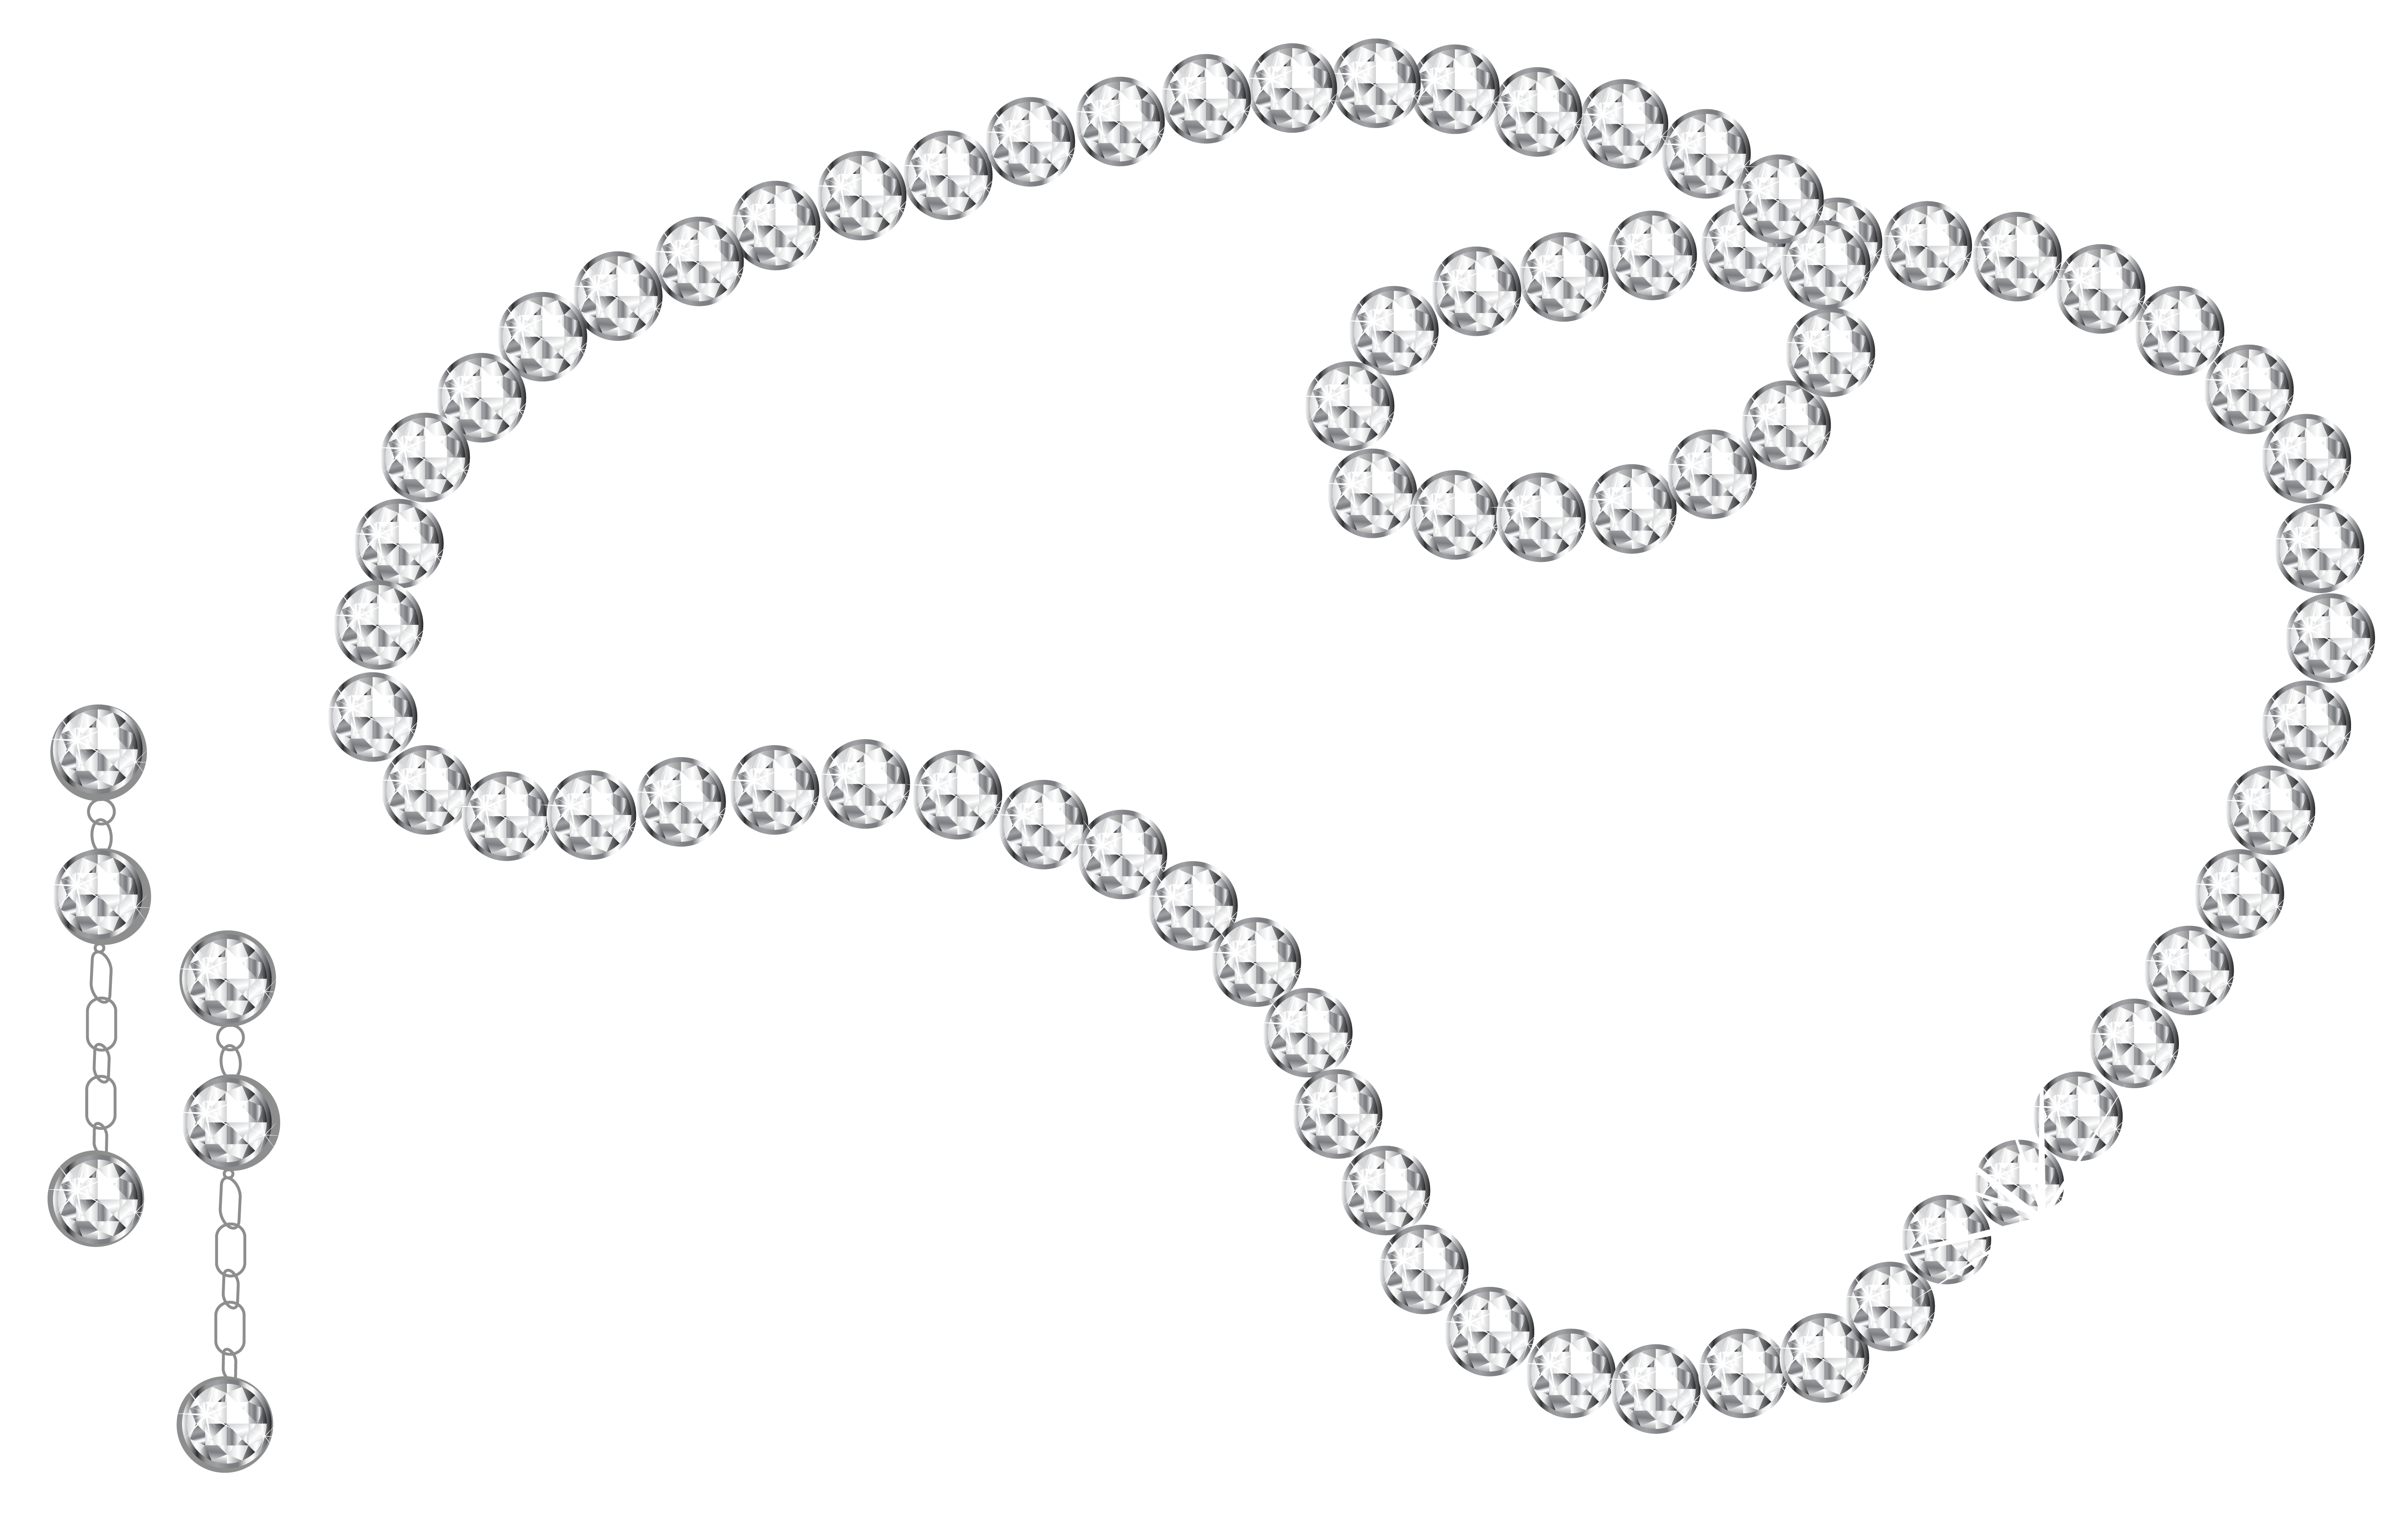 Necklace svg silhouette vector. Pearl clipart transparent